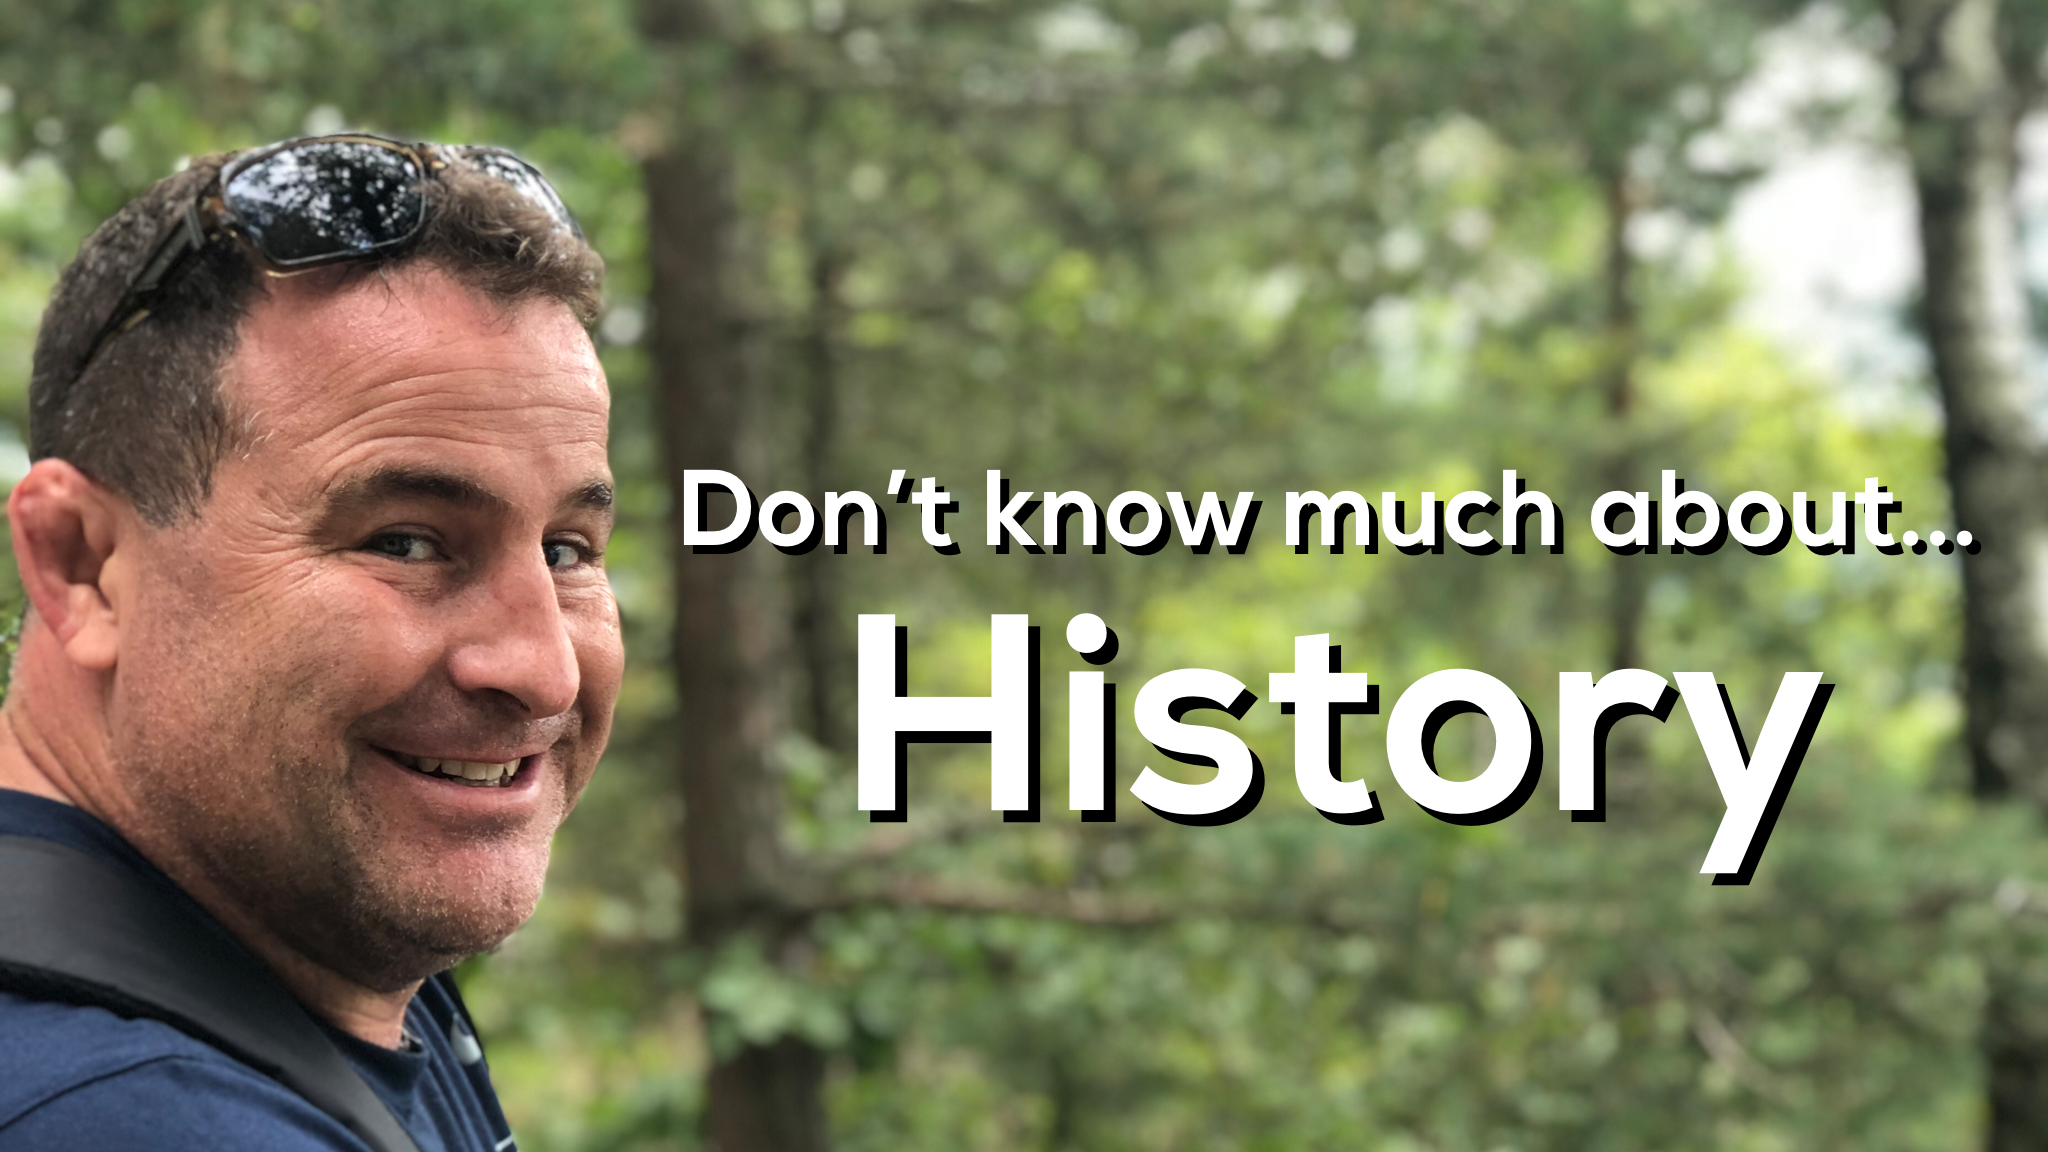 Reid discusses the importance and joy of historical reflection